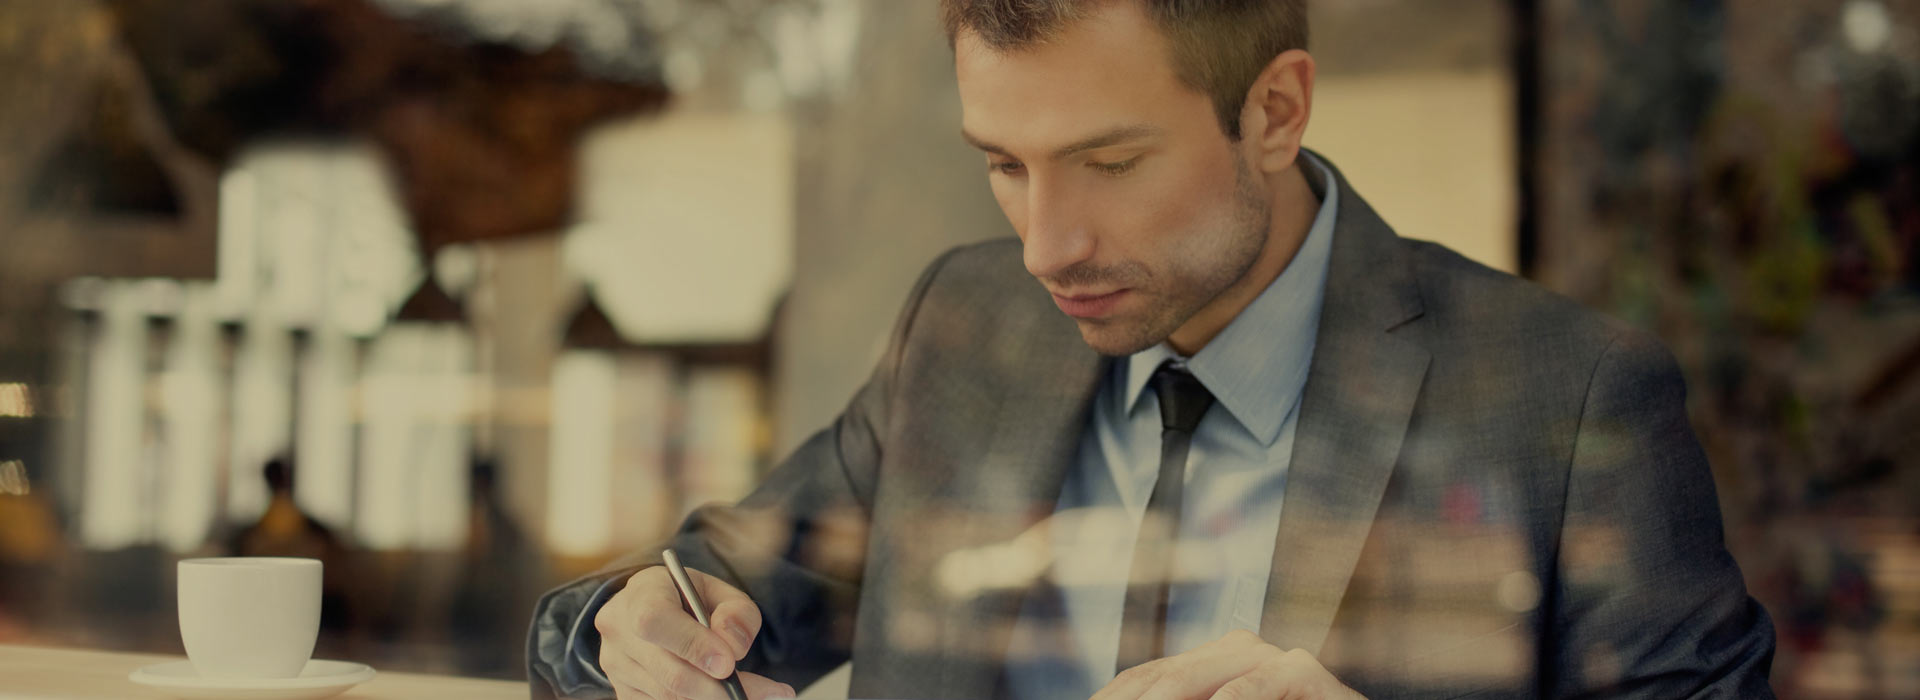 WE'LL HELP MANAGE YOUR BUSINESS